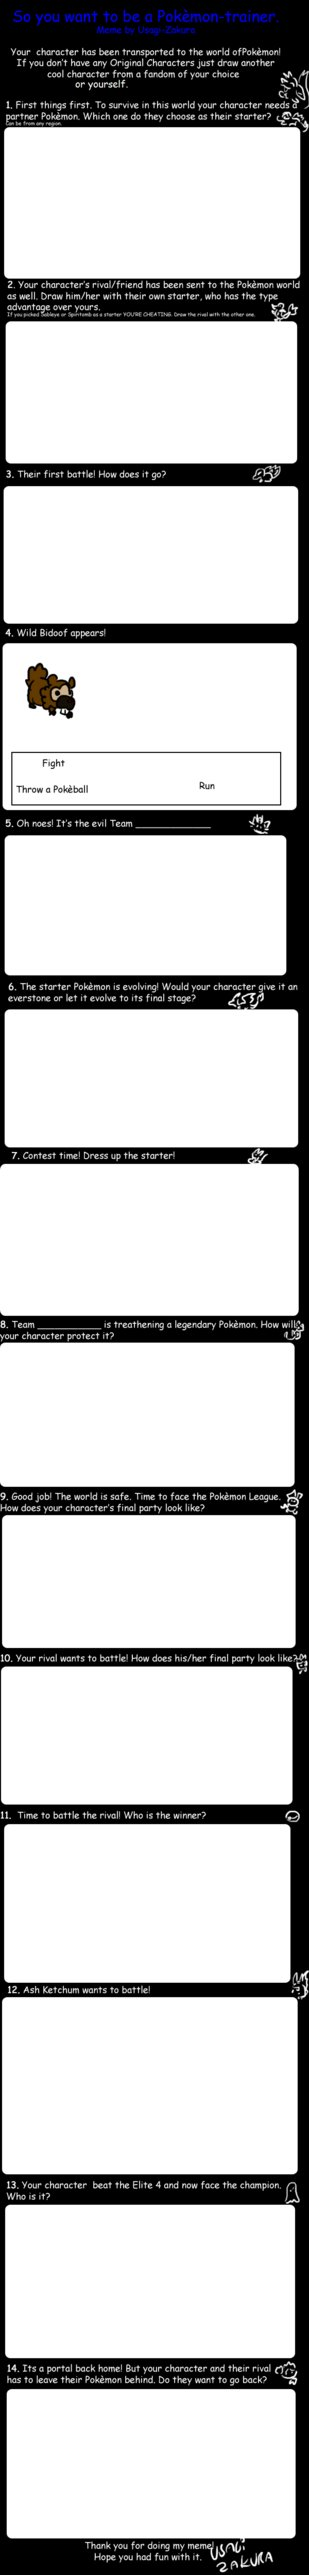 Weird Category Because I Can T Upload Psd Files To The Memes Category Download For Psd Format Non Photoshop File Created T Memes Pokemon Trainer Photoshop